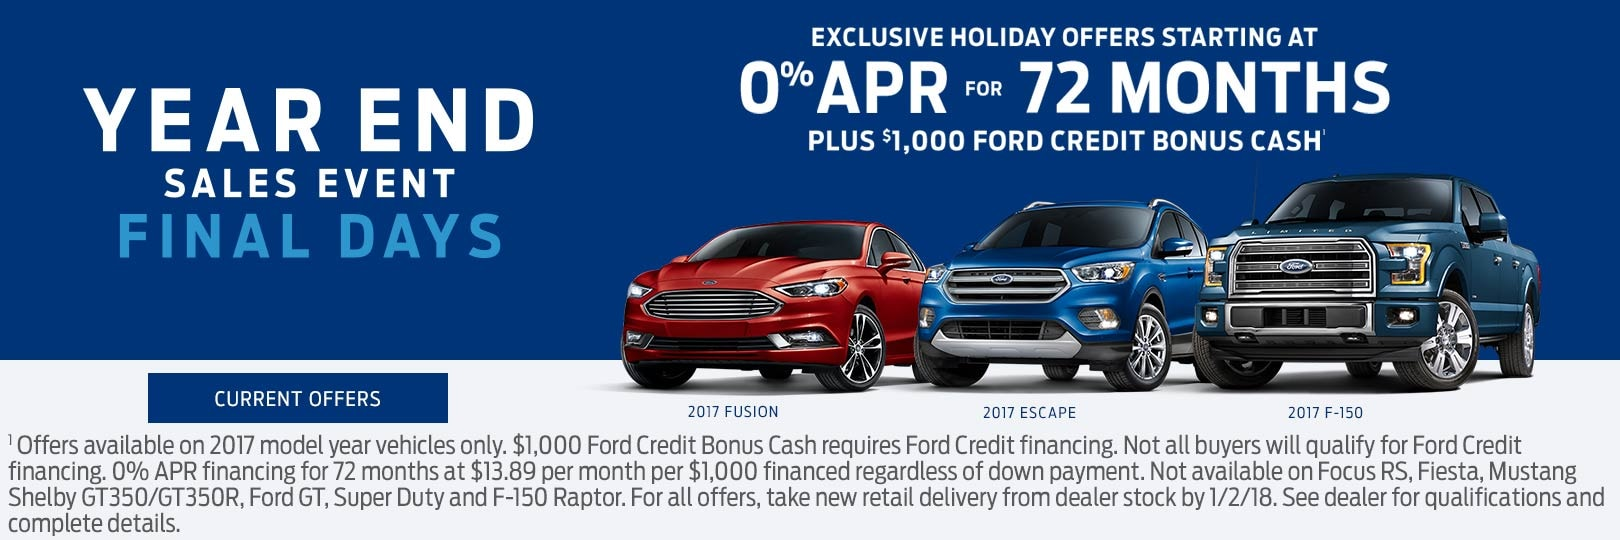 Ford Dealer Mount Pocono PA   Ray Price Ford